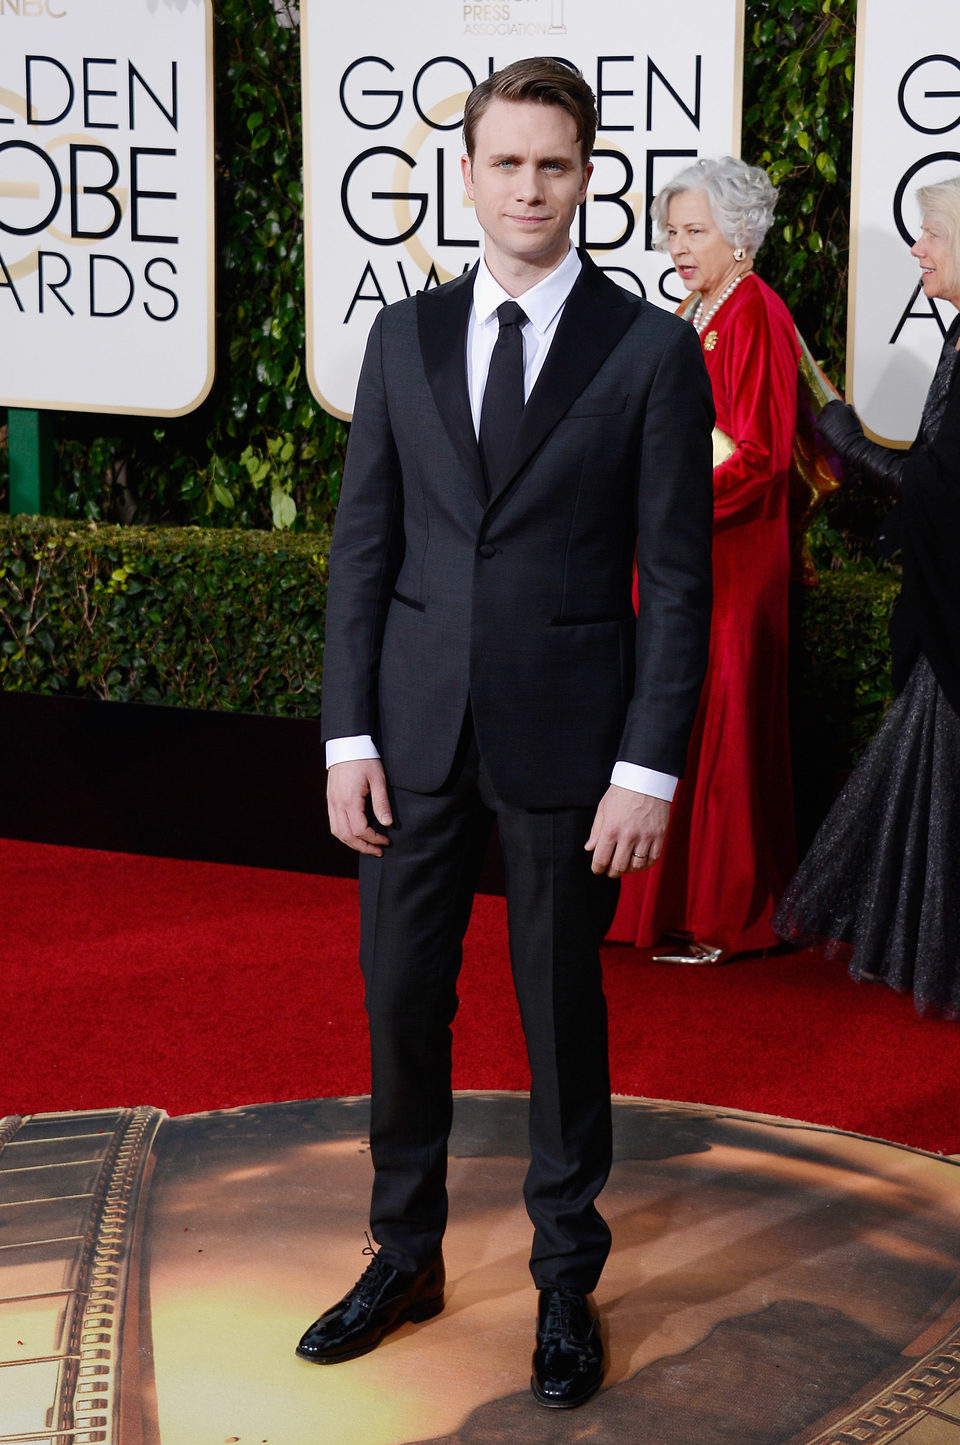 Martin Wallstrom at the 2016 Golden Globes red carpet